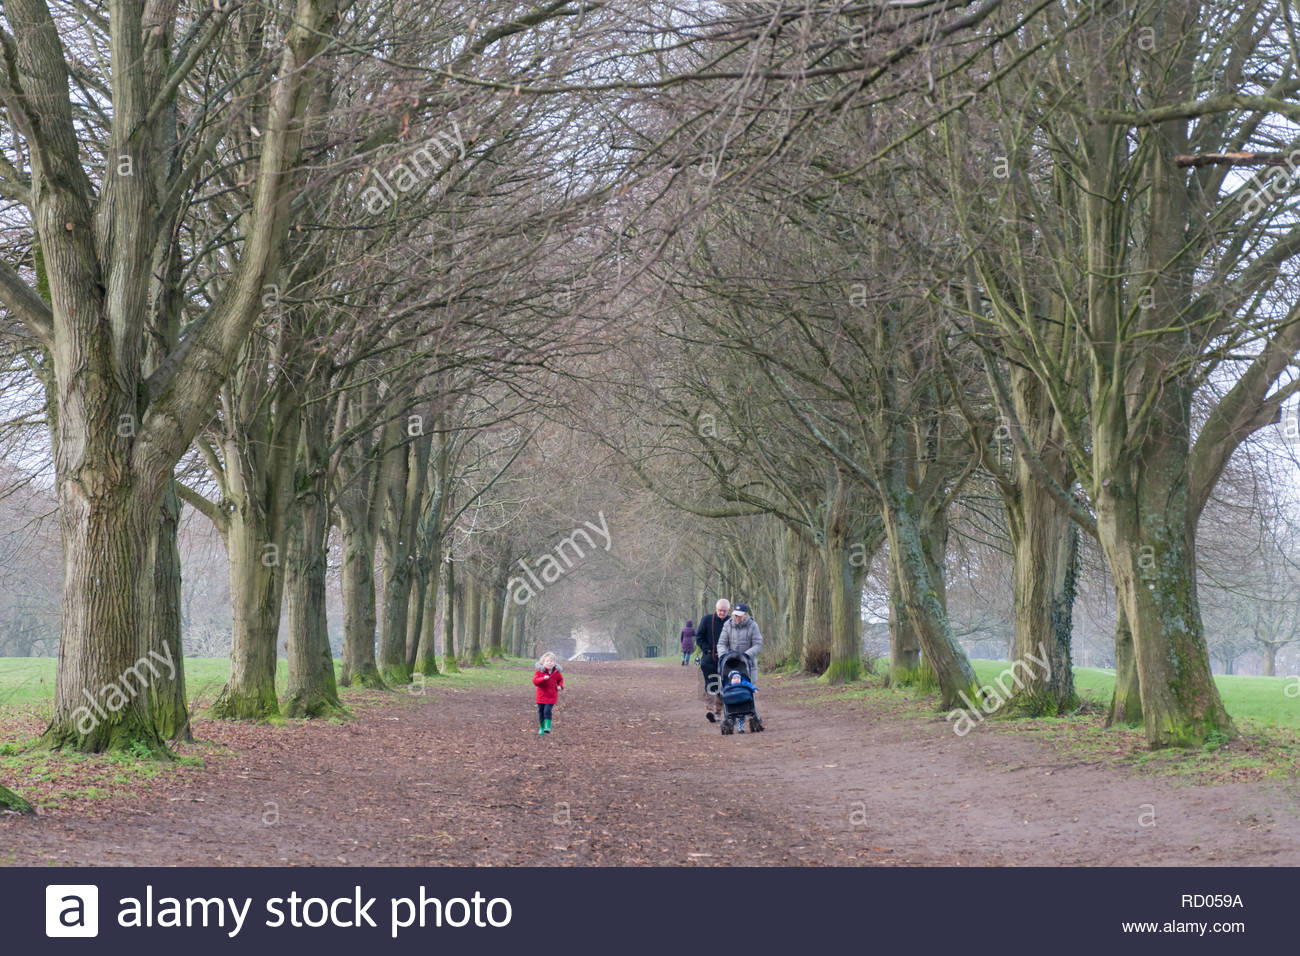 People going for a winter walk under an avenue of trees in Farnham Park, Surrey, UK. Everyday life. - Stock Image